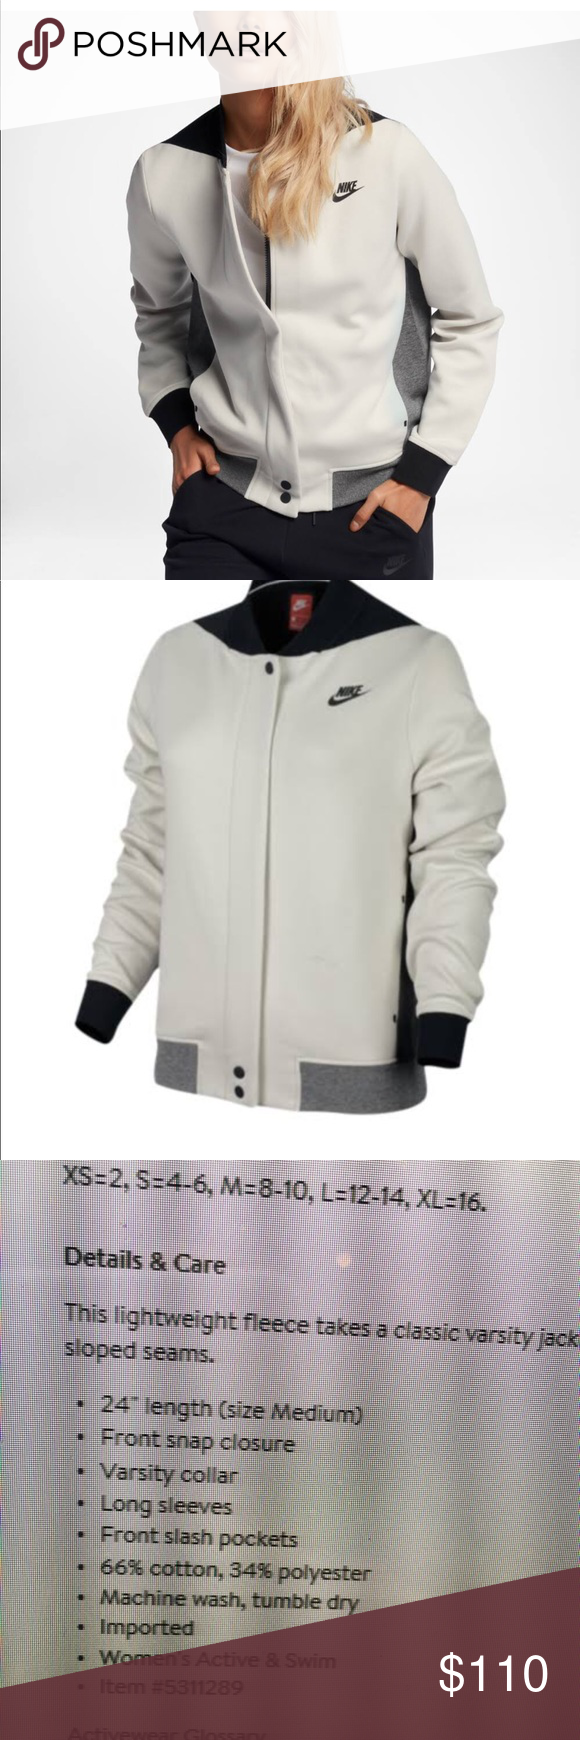 8ef6c87adf94 2017 Nike Tech Destroyer track jacket Size women s medium. Snap button  front closure Length  26